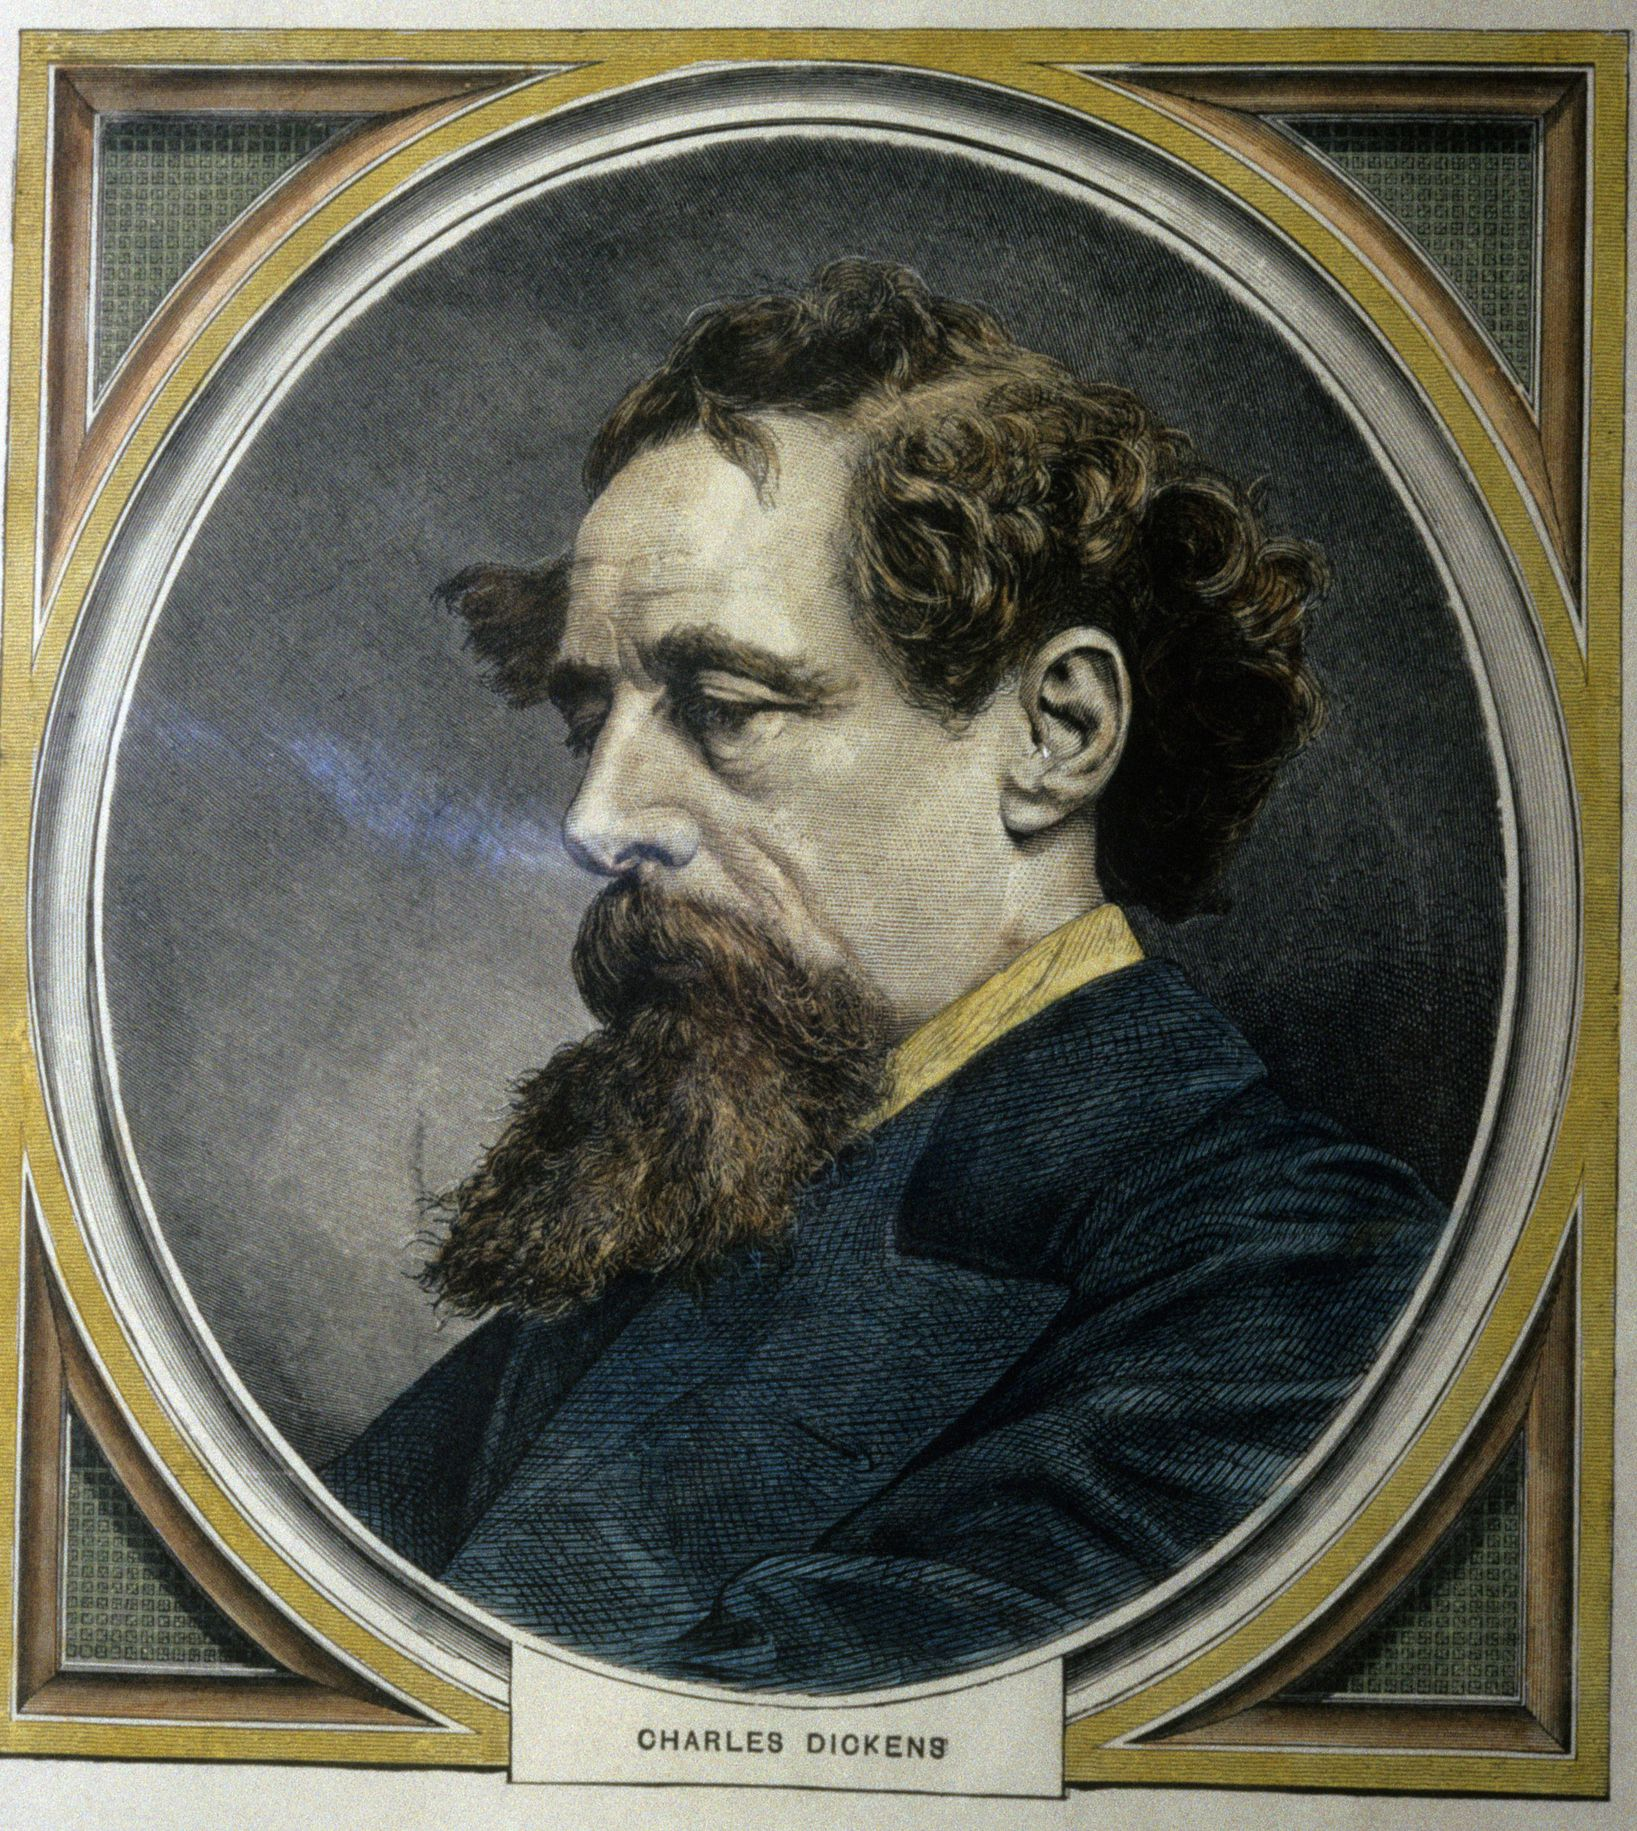 a biography of charles dickens one of the greatest writers Amazoncom: charles dickens: the complete novels (the greatest writers of all time) ebook: charles dickens: kindle store.